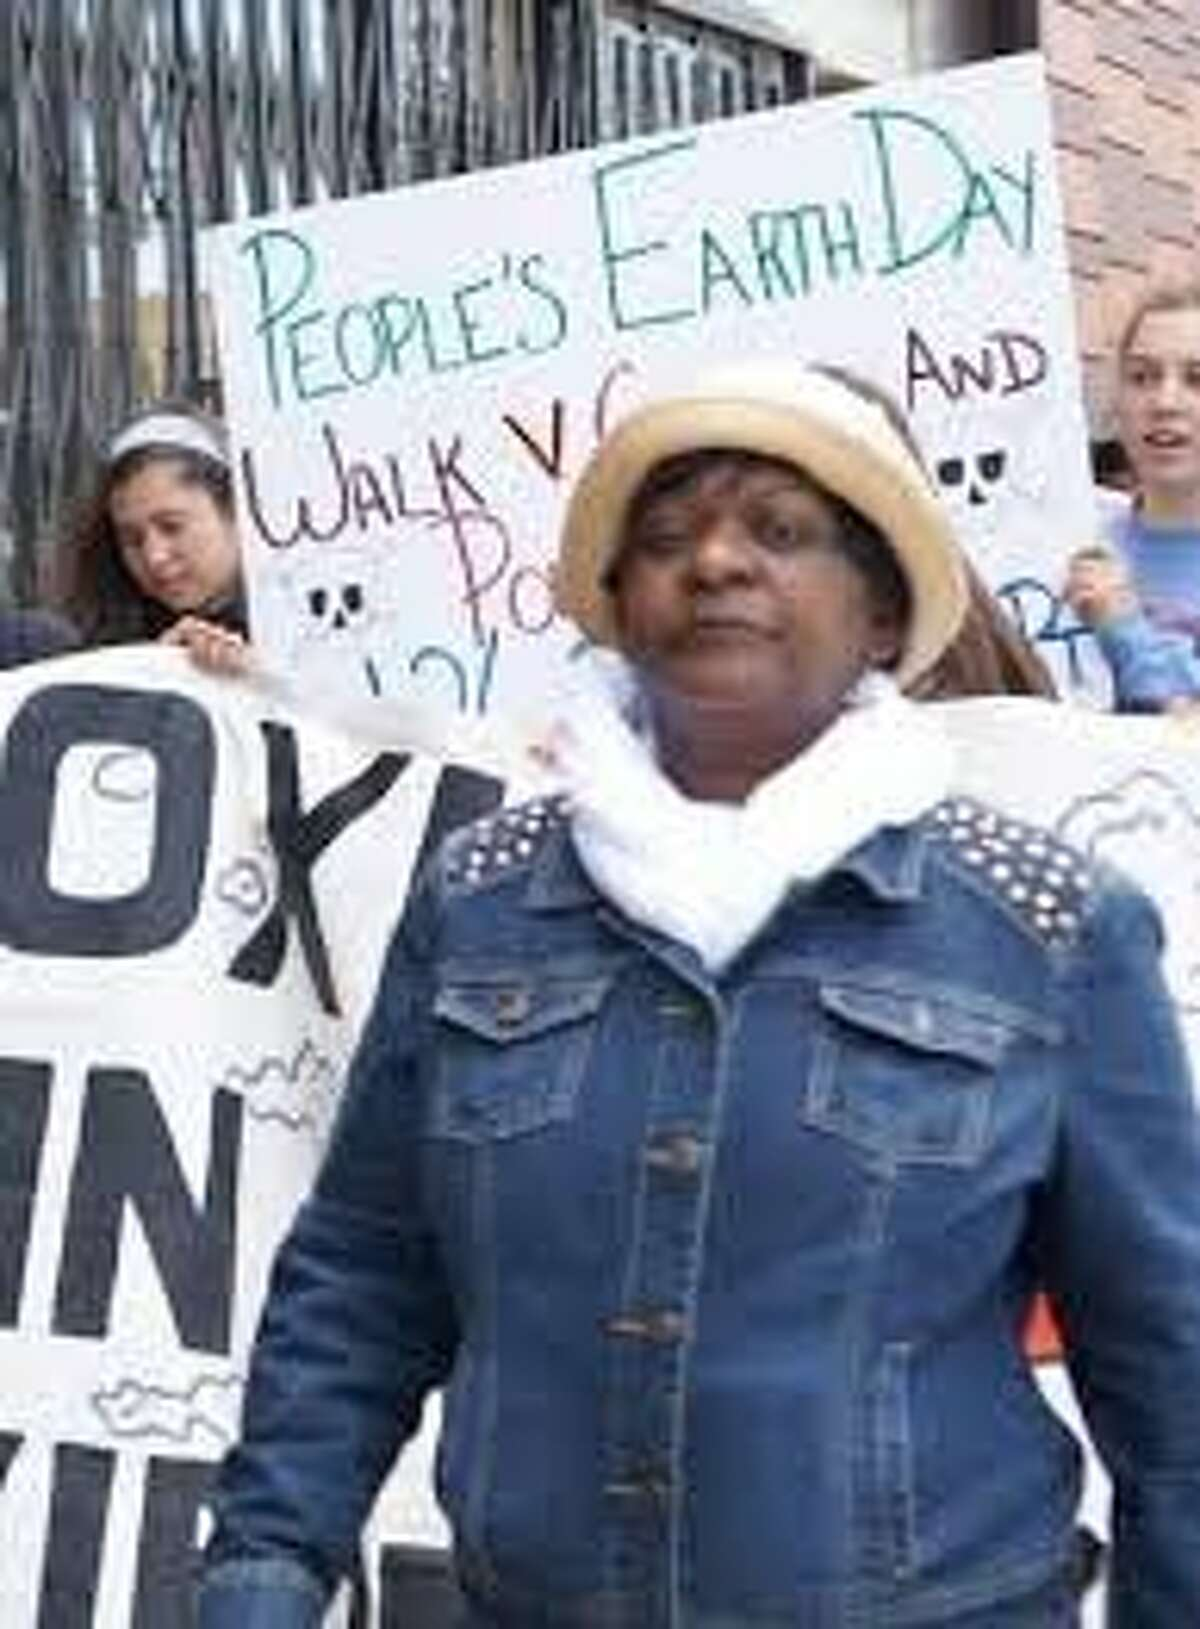 Environmental activist Marie Harrison was no stranger to protests and picket signs